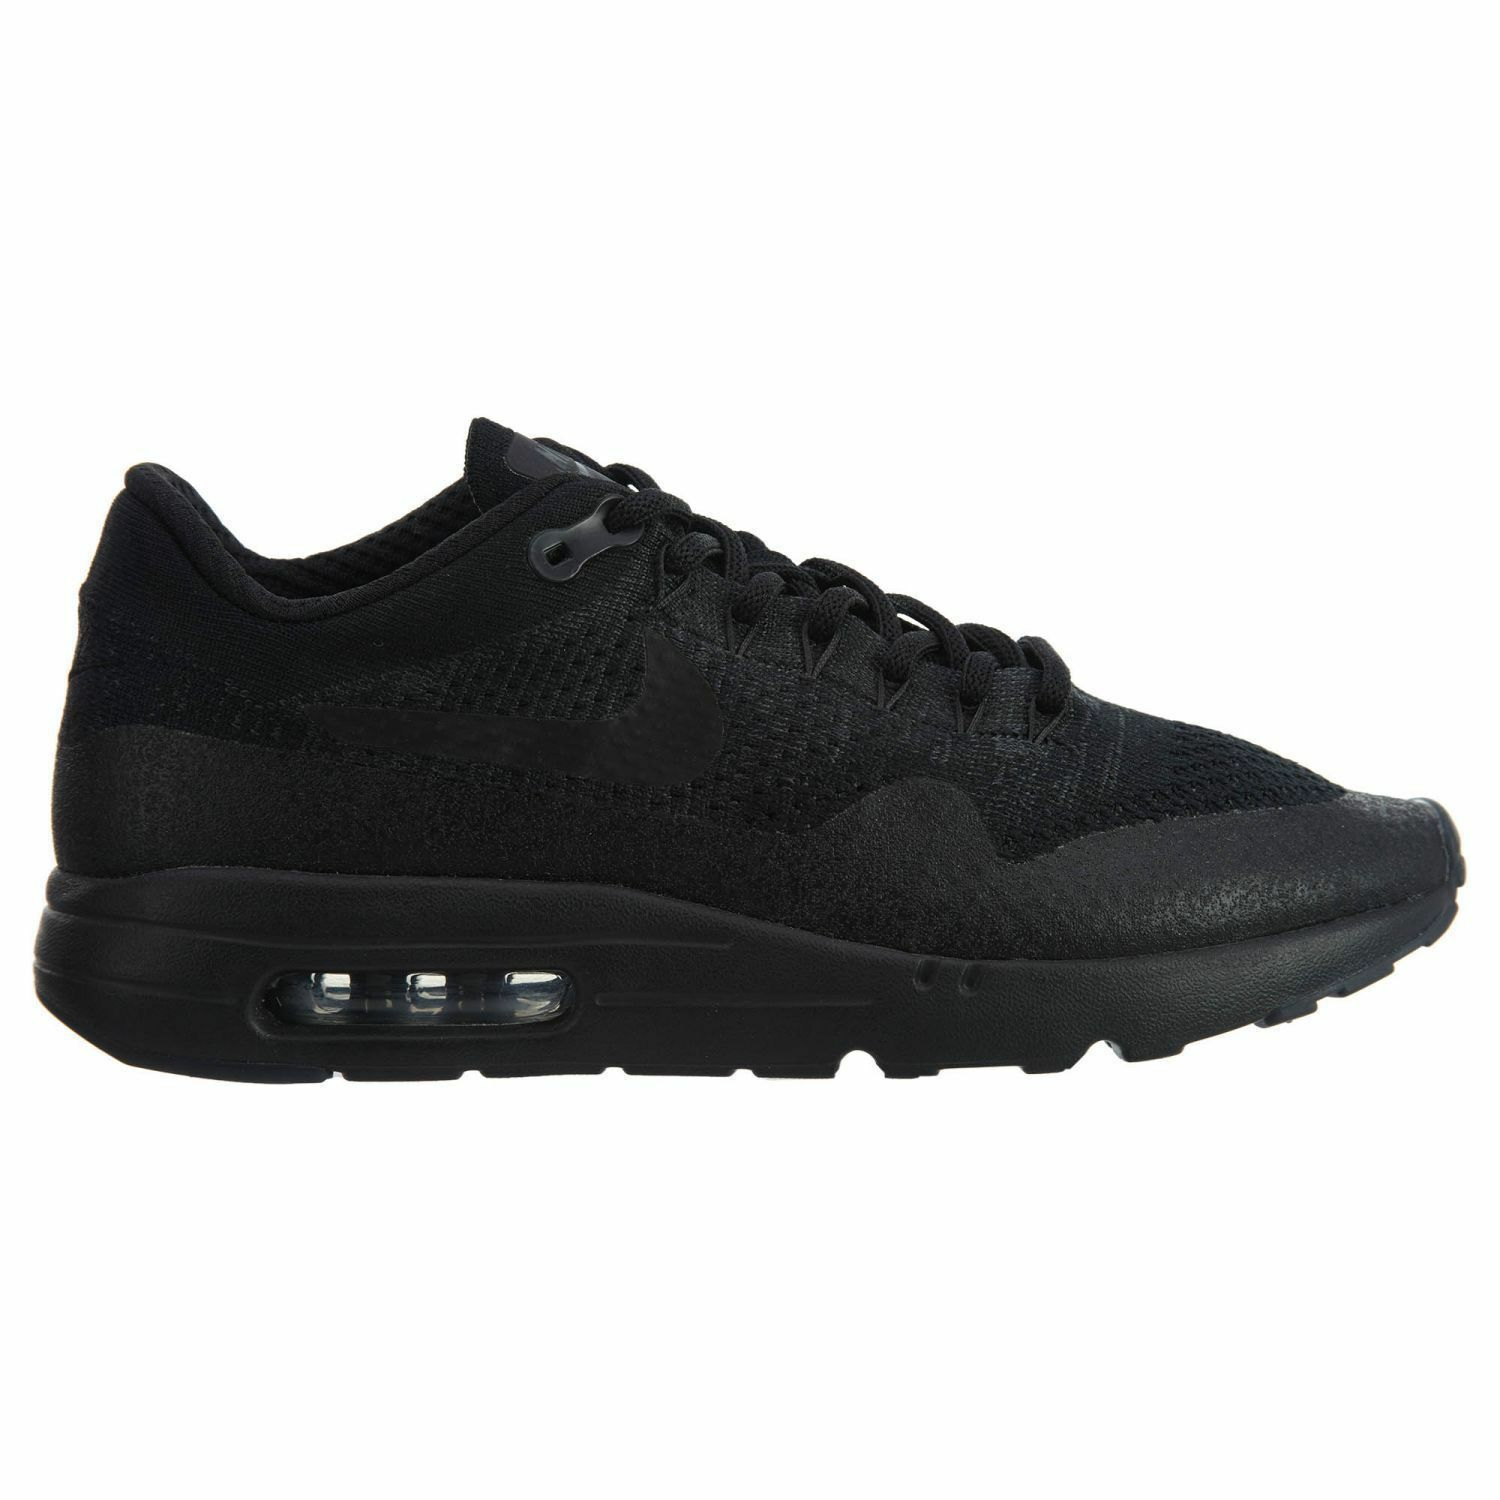 Nike Air Max 1 Ultra Flyknit Uomo Size 10 Shoes Run Nero Anthracite 856958 001